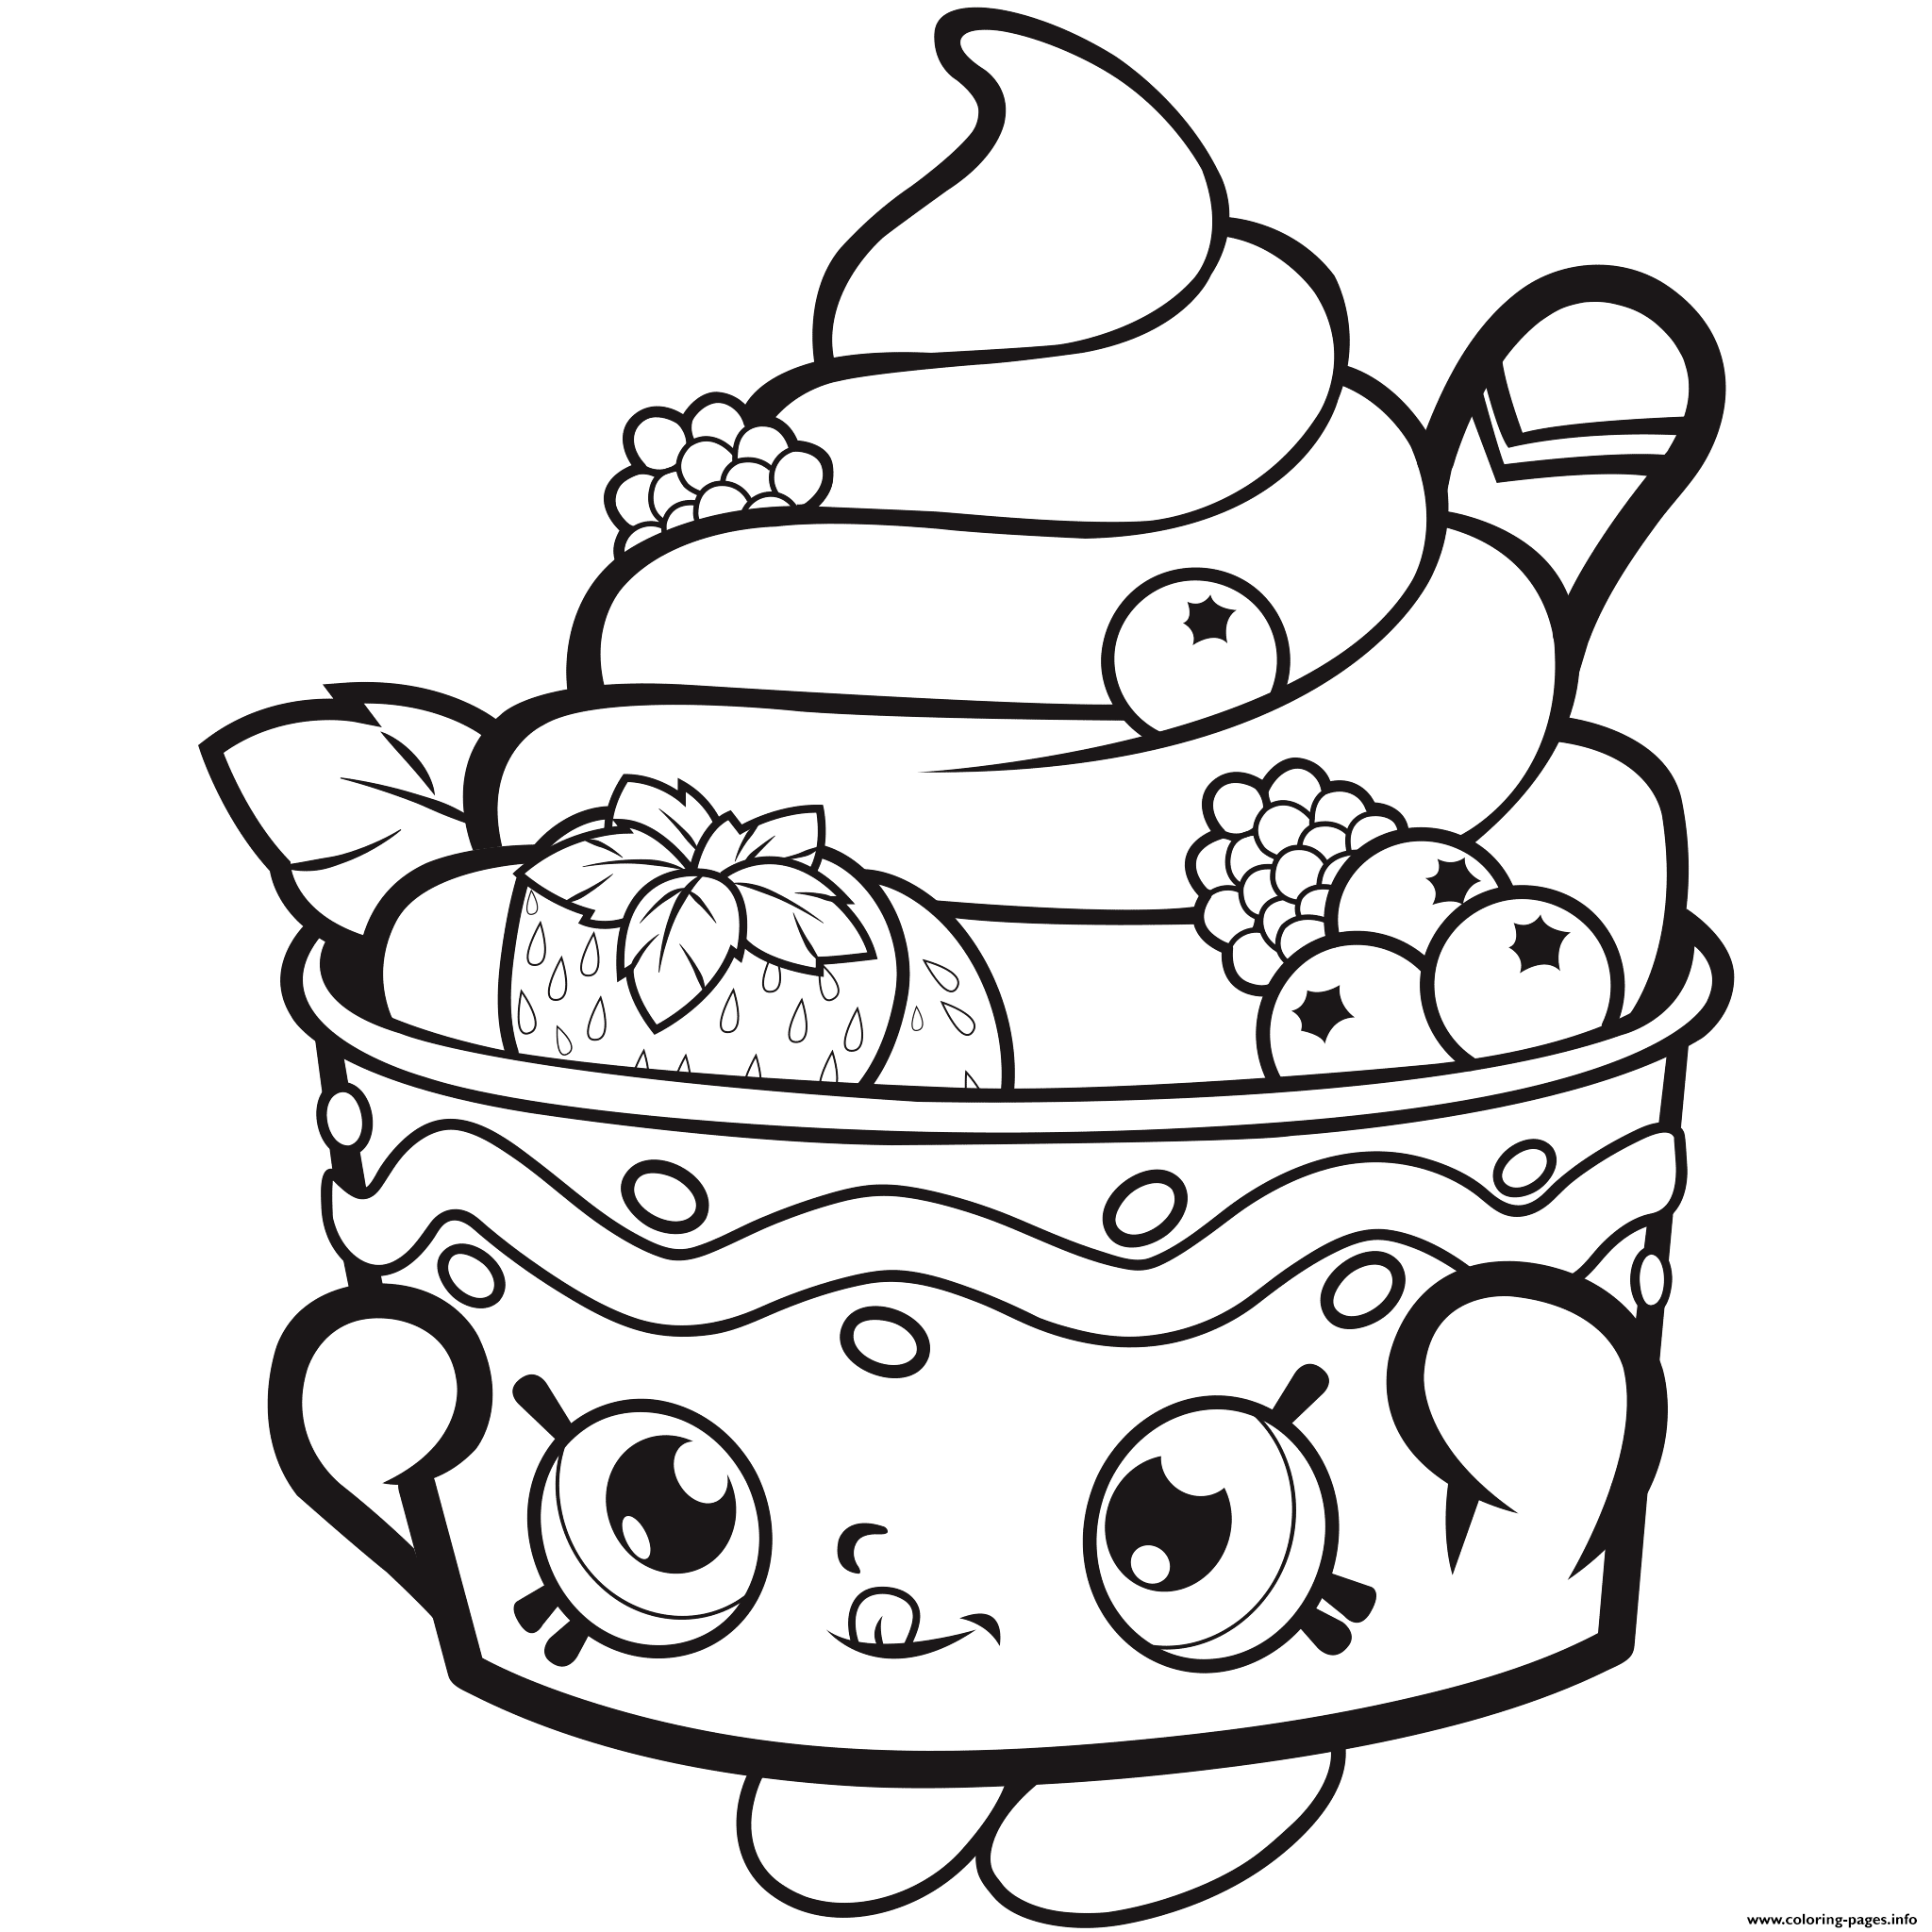 Shopkins coloring pages wishes - Shopkins Icecream Strawberry Coloring Pages